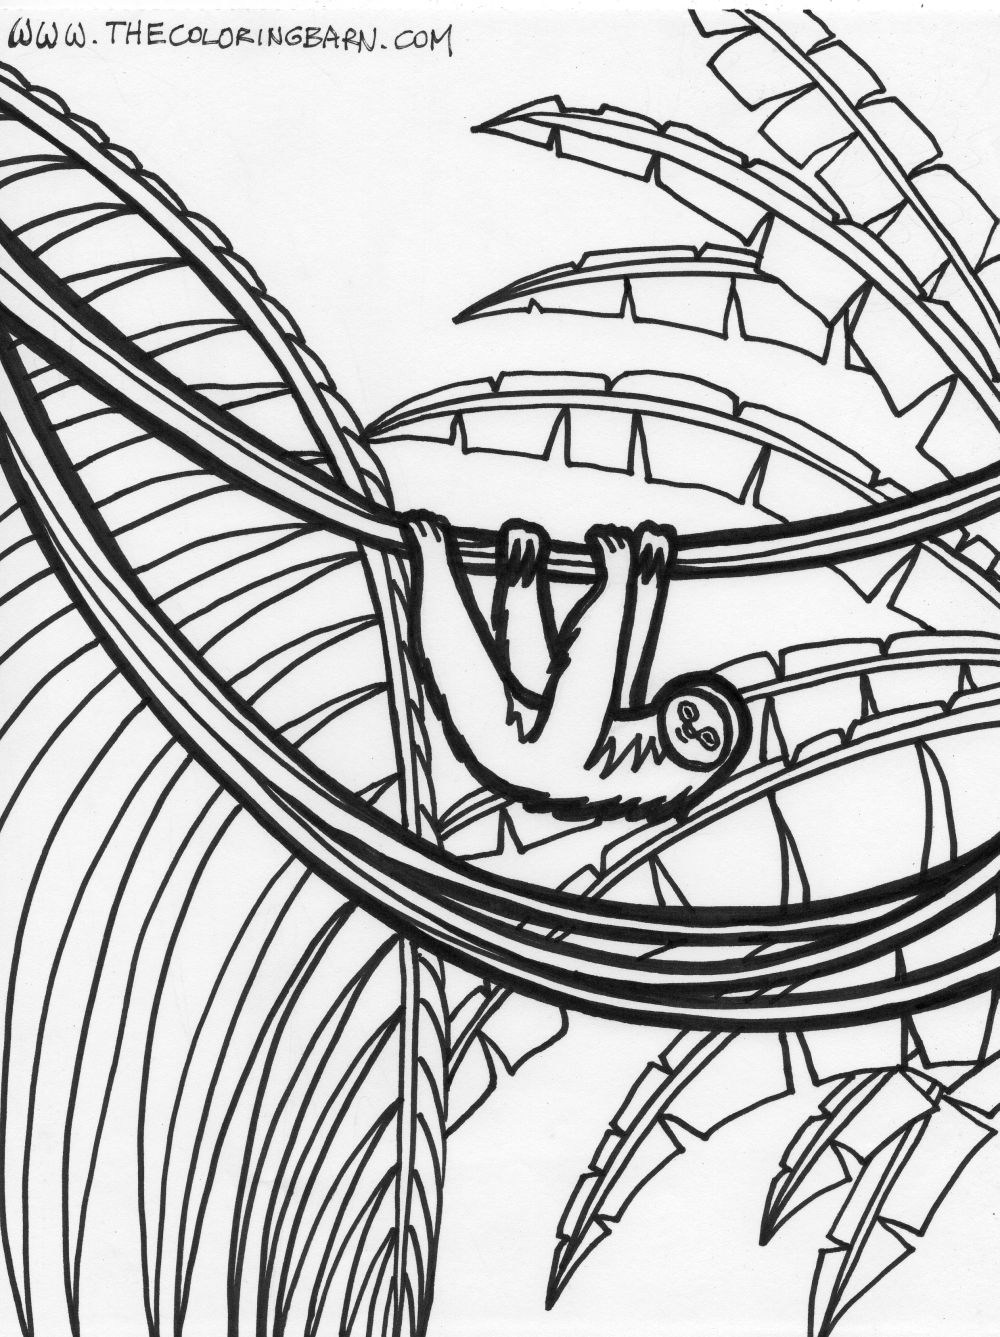 Drawn rainforest animated Pages Coloring Pages Rainforest Rainforest